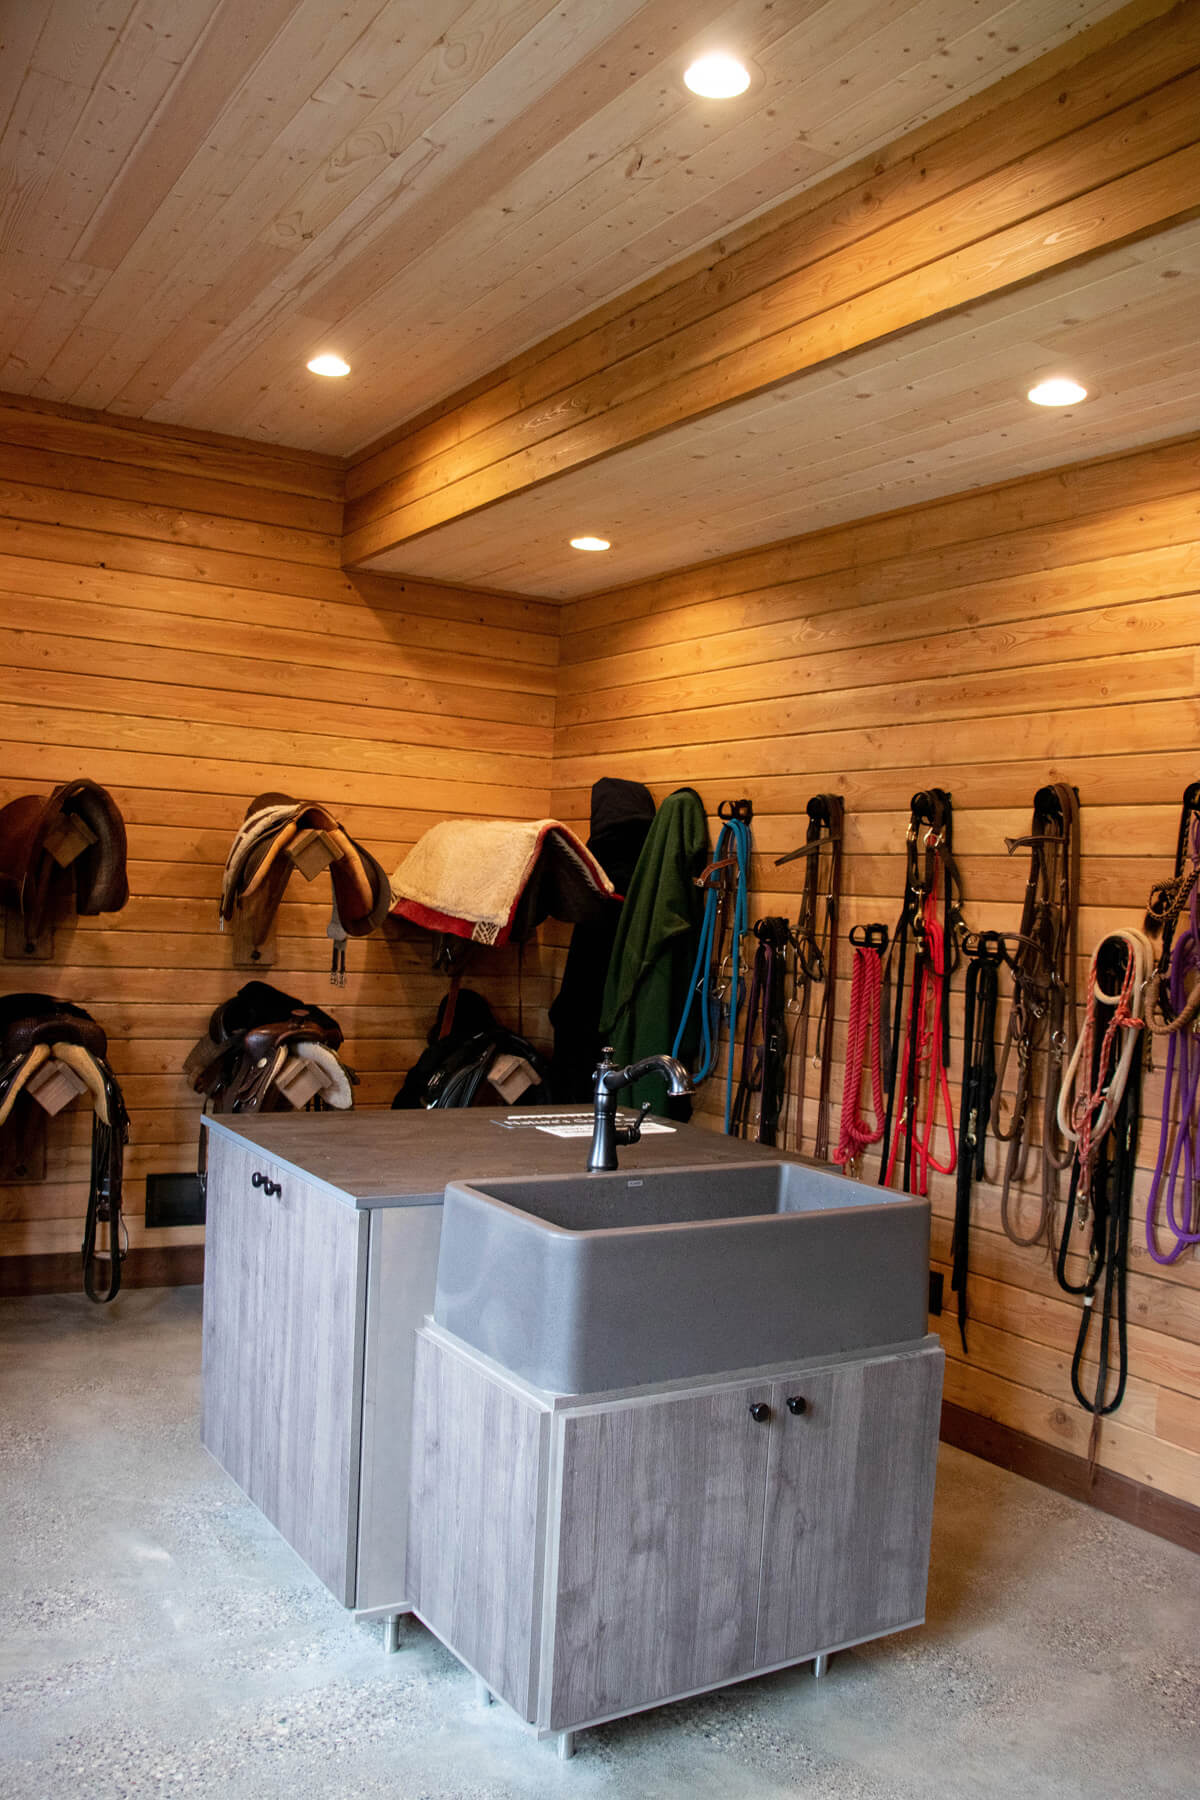 Twin Cities New Construction Barn Pros Equestrian Barn Stillwater Minnesota interior sink and storage built by Red Pine Builders